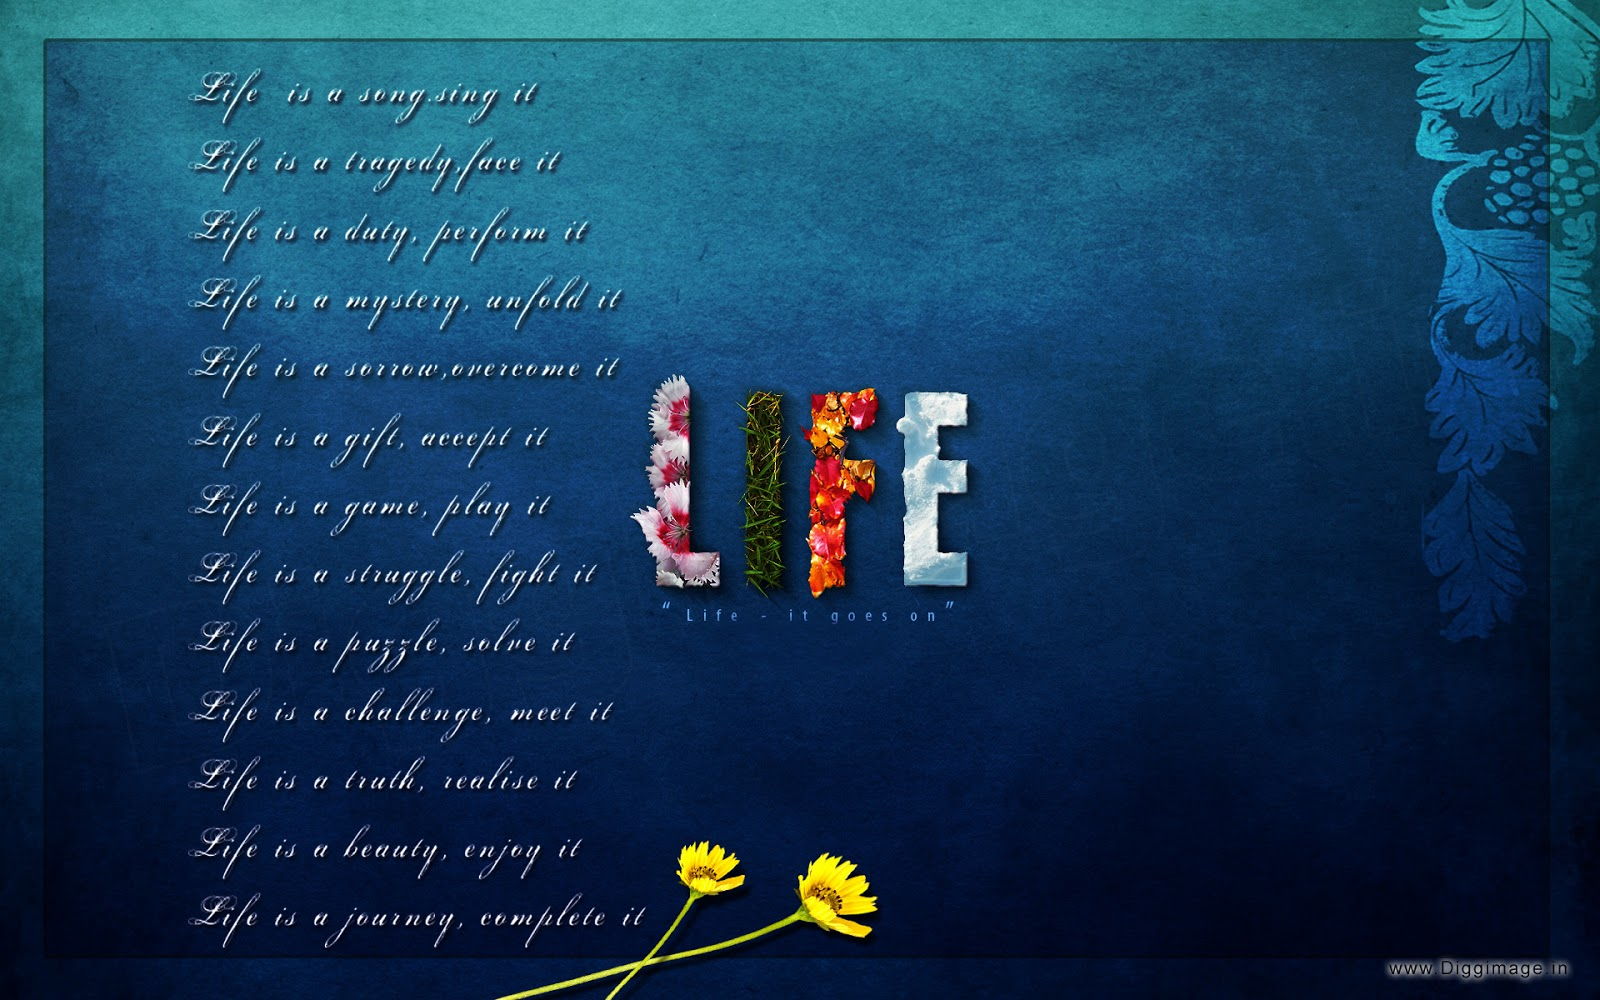 Wallpaper download life - About Life Beautiful Wallpaper Telling What Is Life